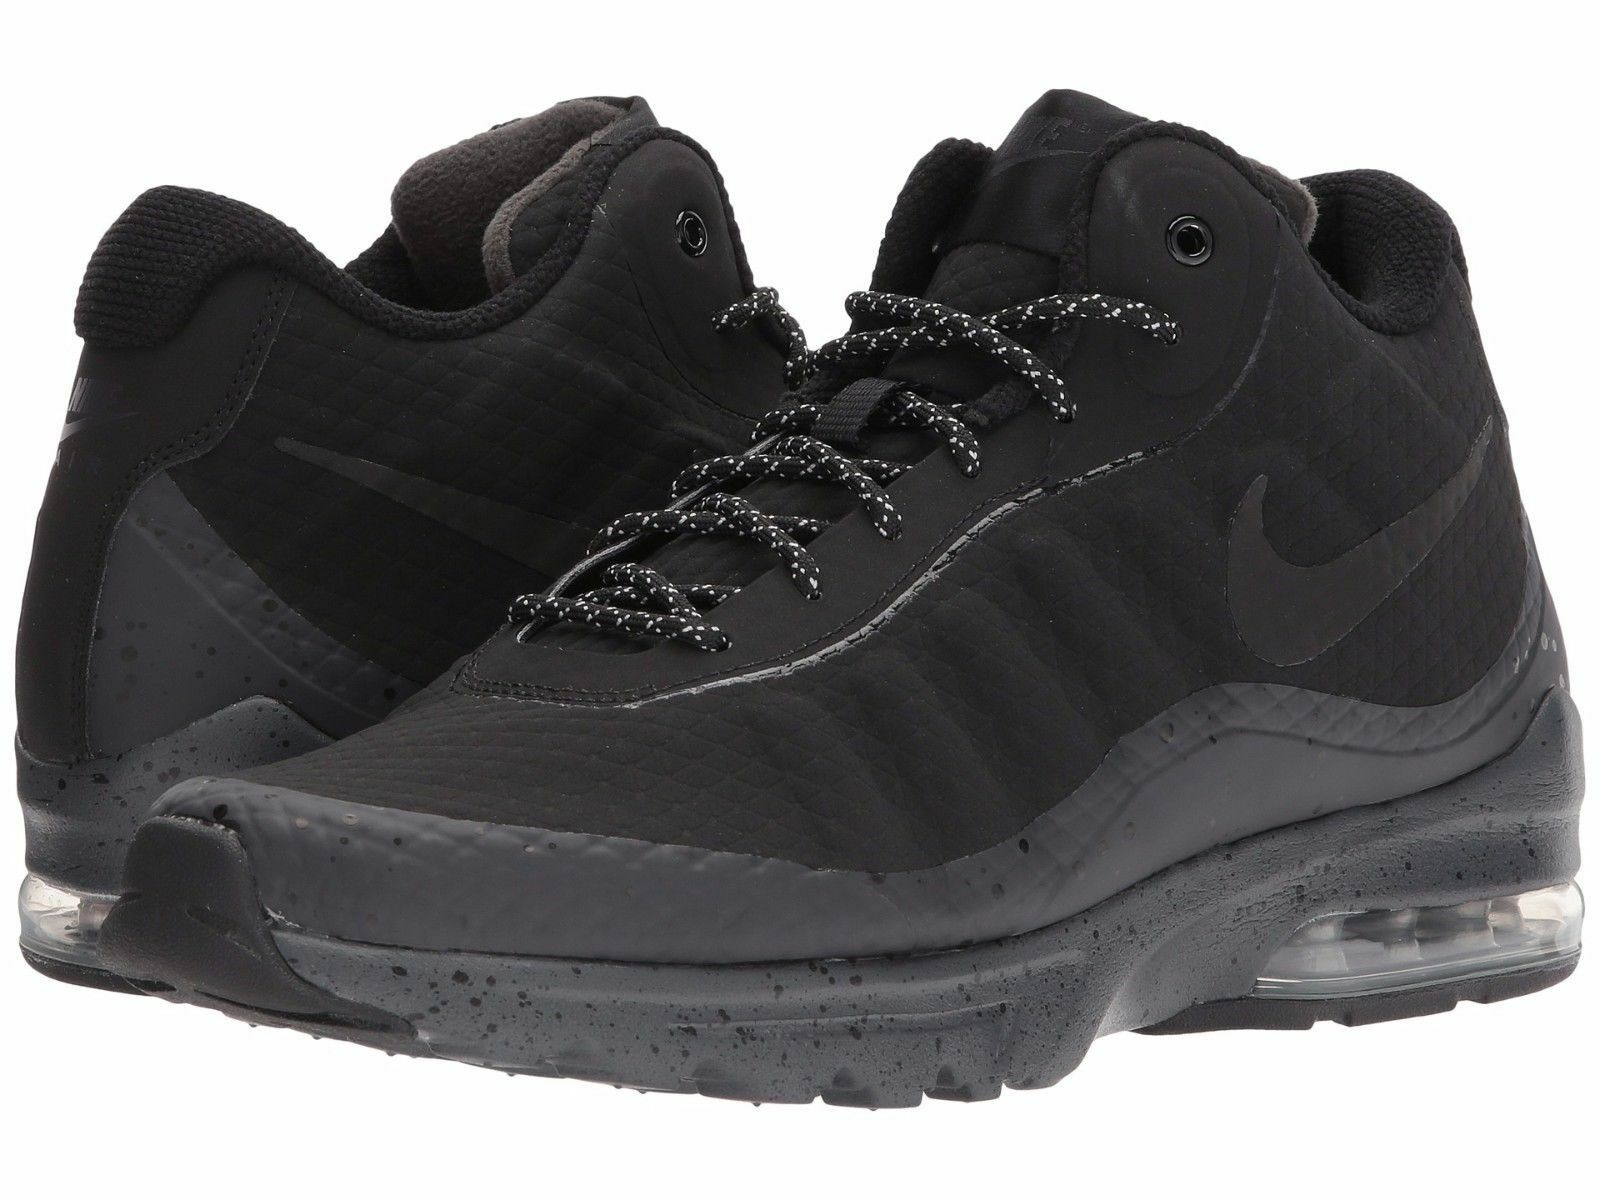 Men's Nike Air Max Invigor MID Black/Black-Anthracite Comfortable Seasonal clearance sale